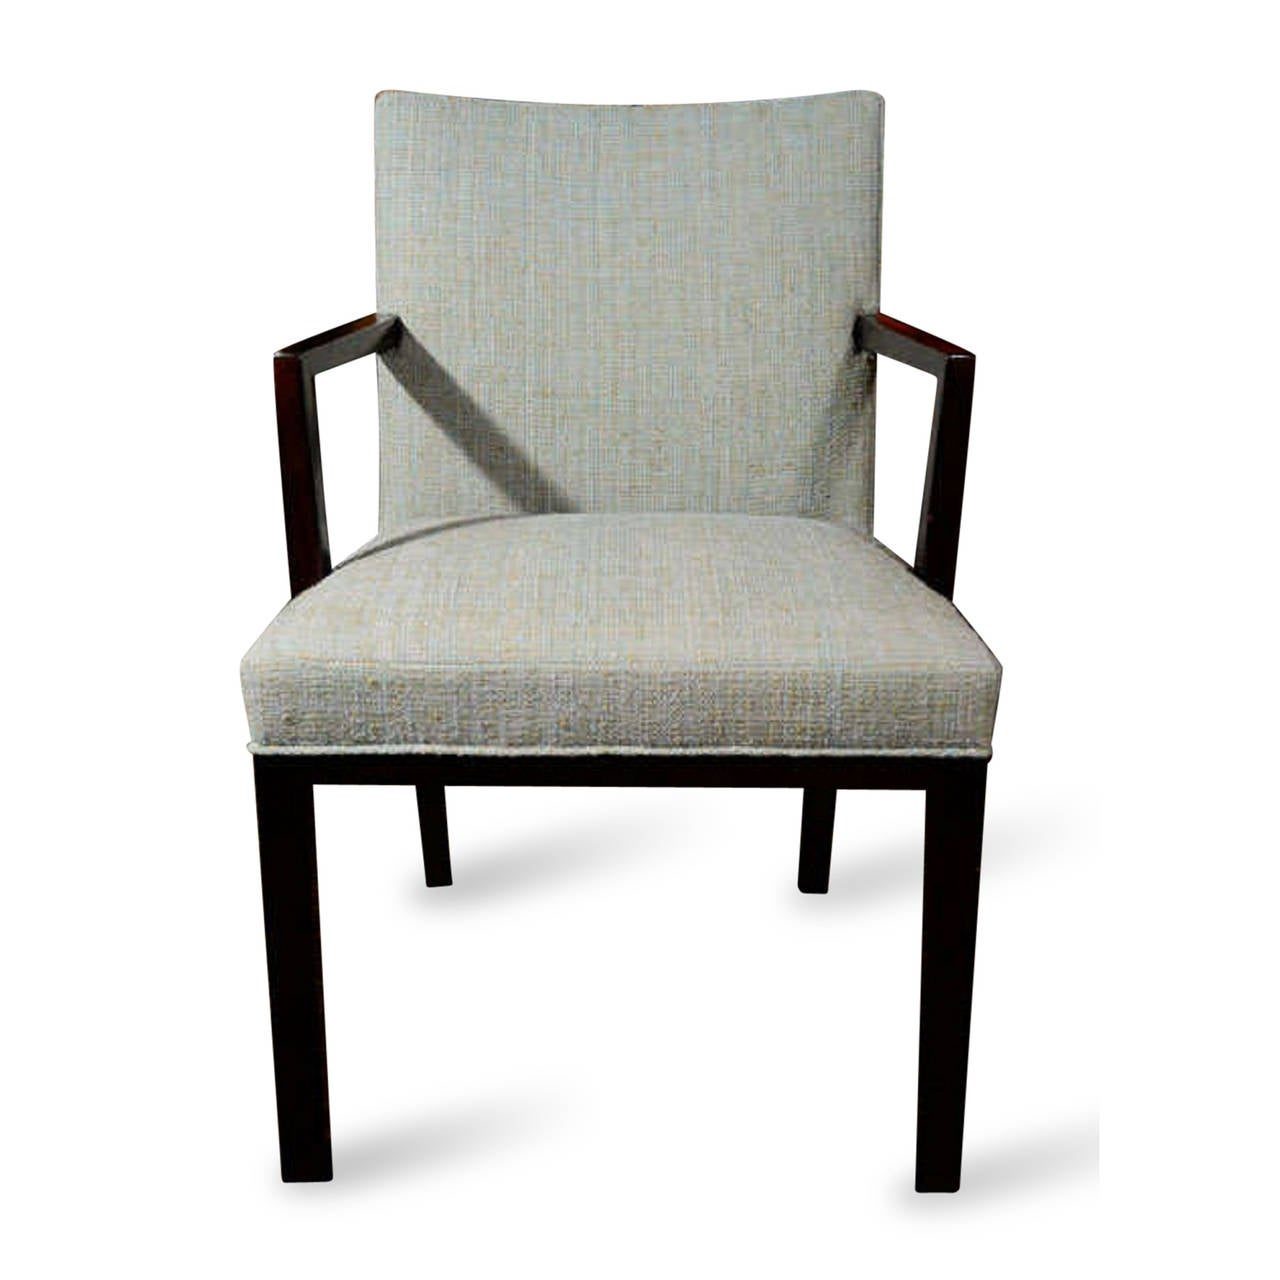 Upholstered dining chairs by edward wormley for dunbar for Upholstered dining chairs for sale